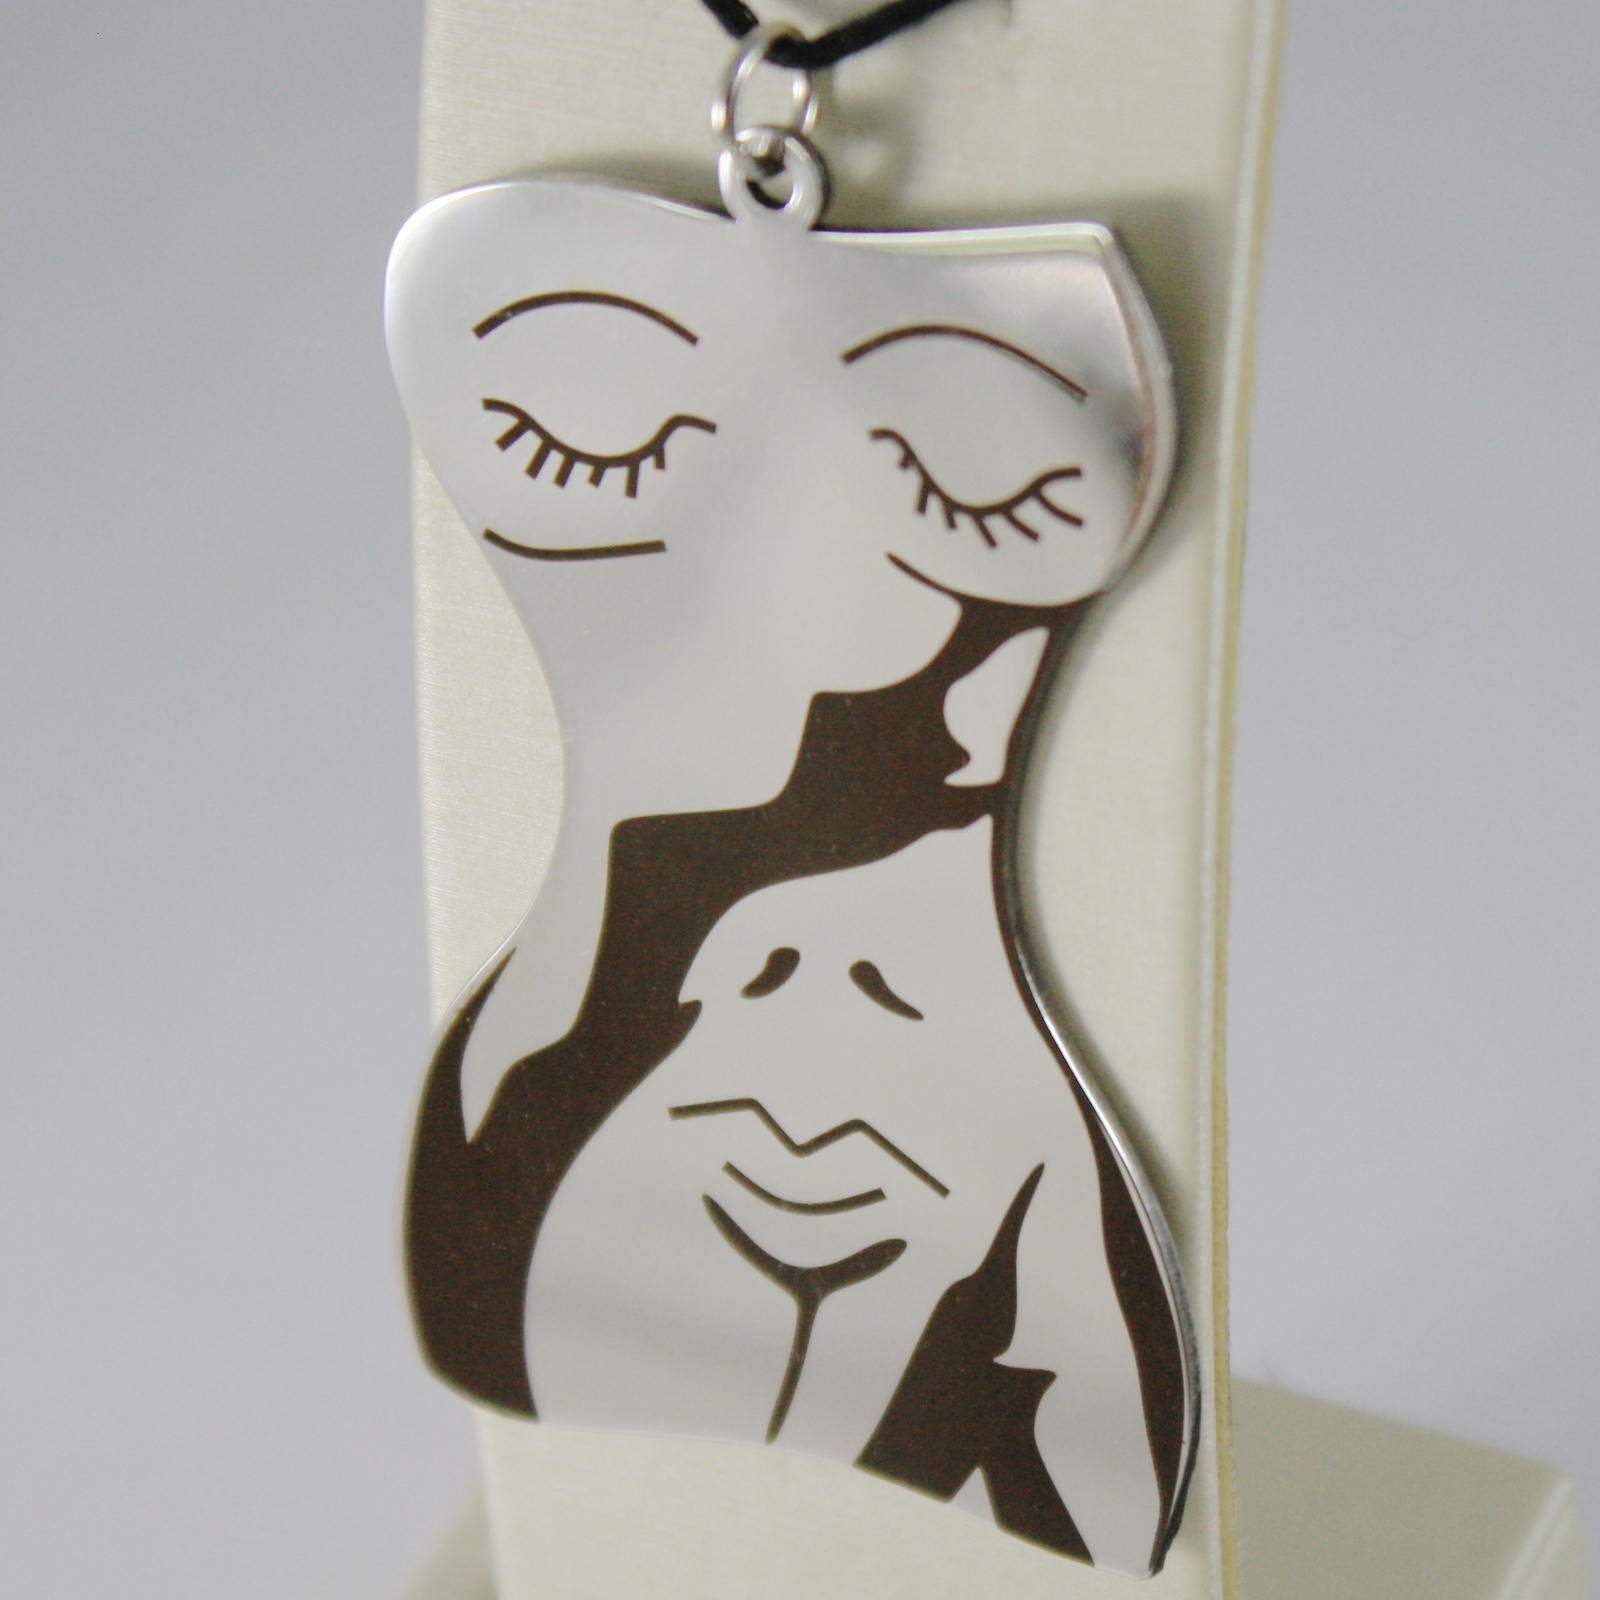 STAINLESS STEEL WOMAN BODY PENDANT CHARMS, FINELY ENGRAVED, BY KATIA D'ANGELO